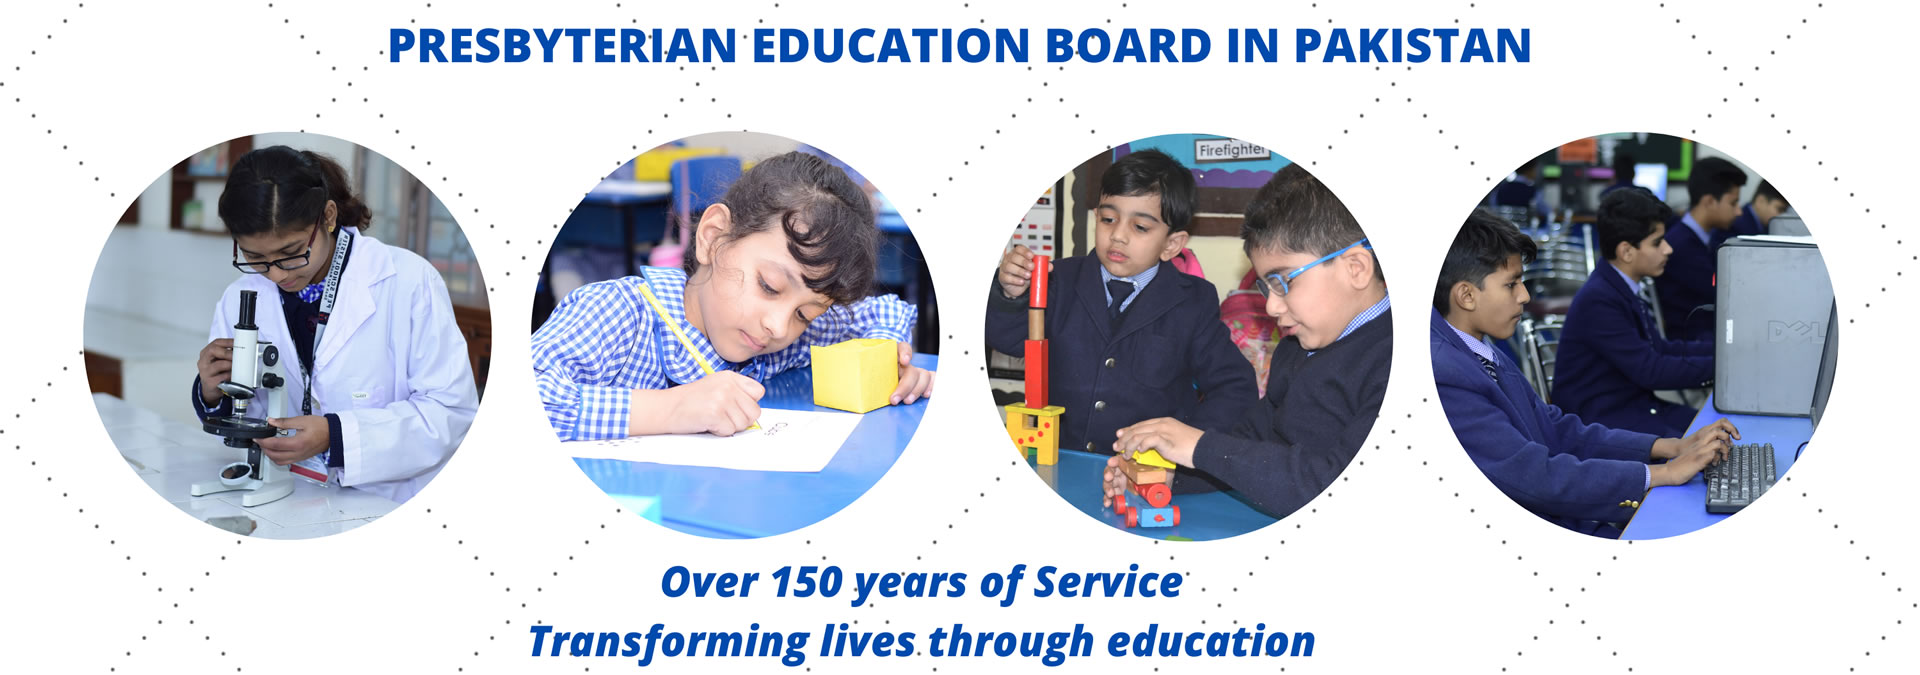 Presbyterian-Education-Board-in-Pakistan-1